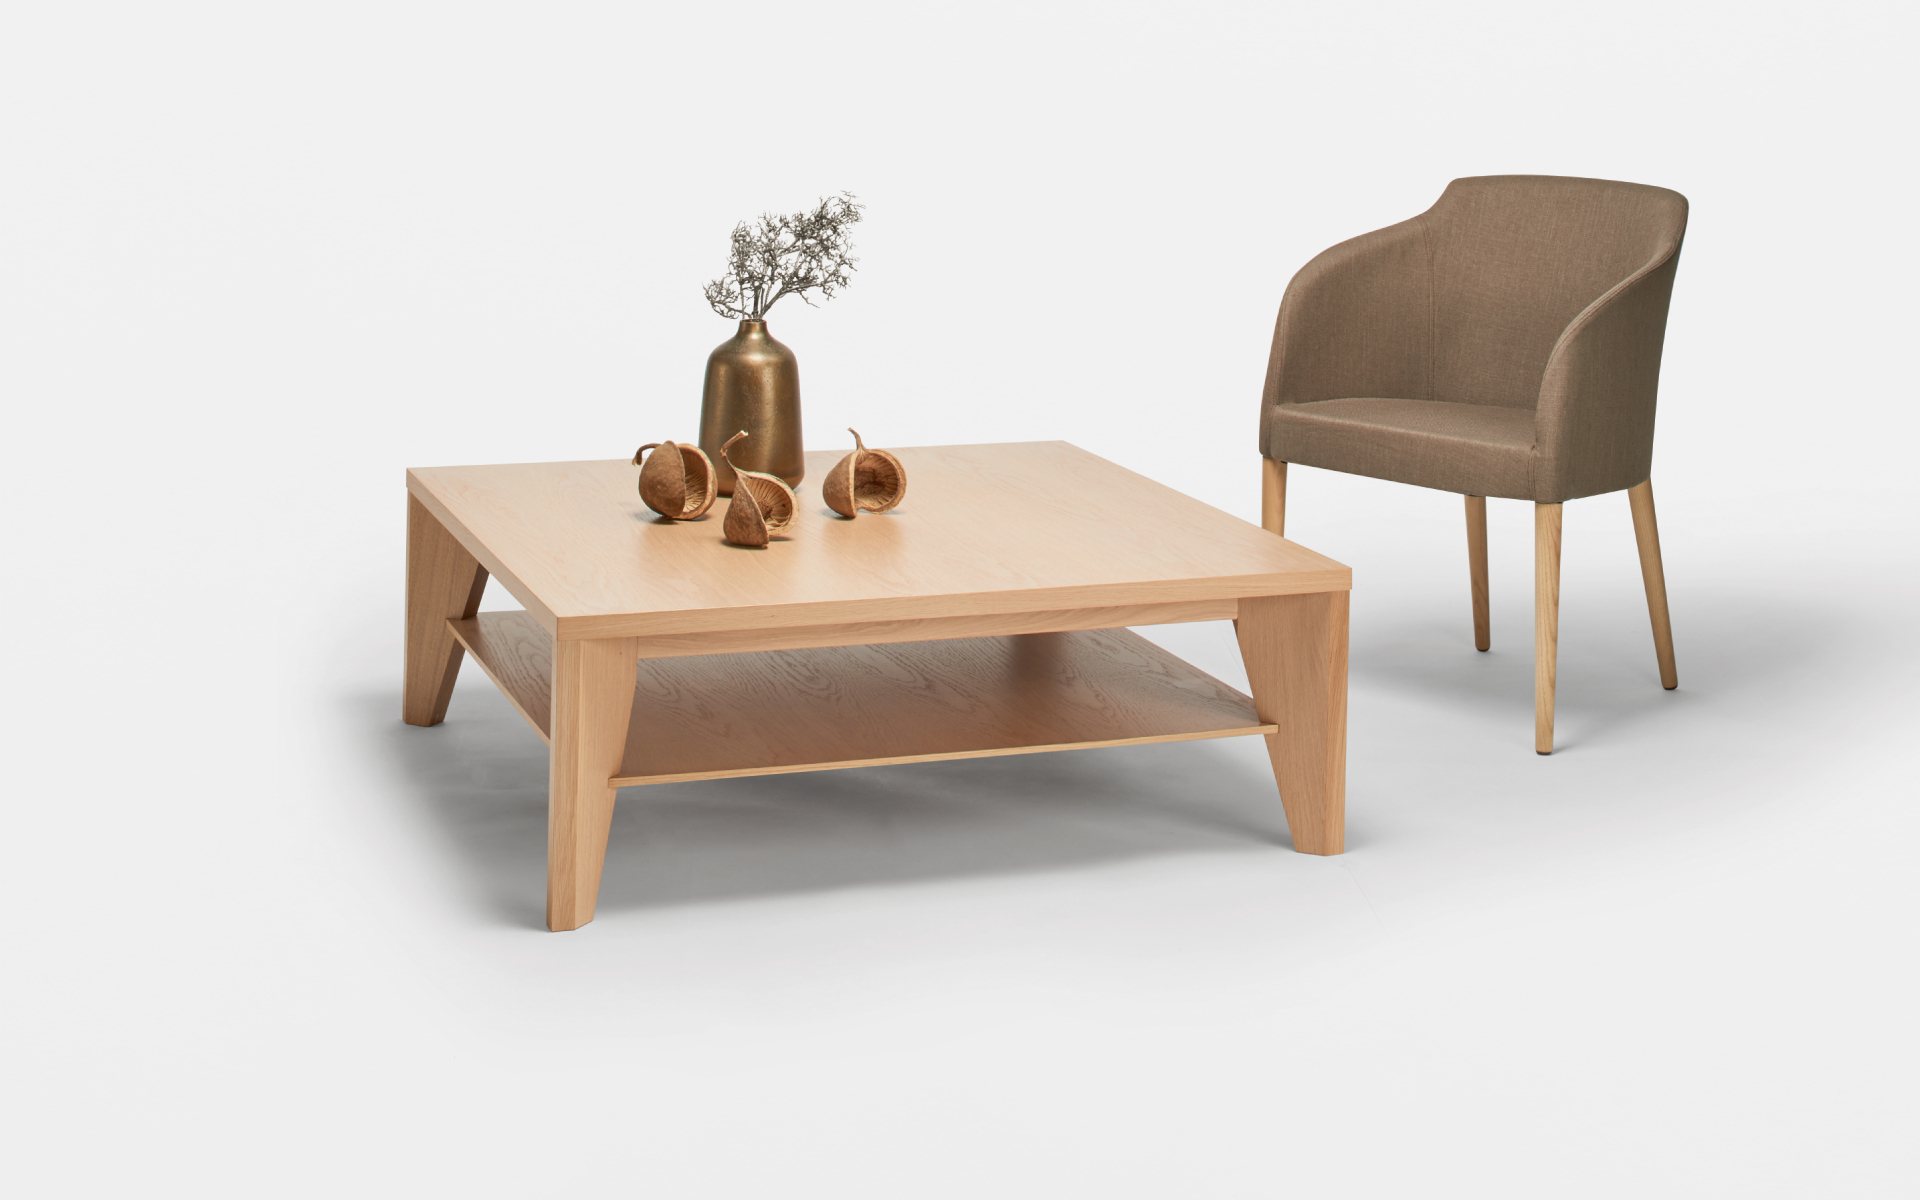 KS32 coffee table